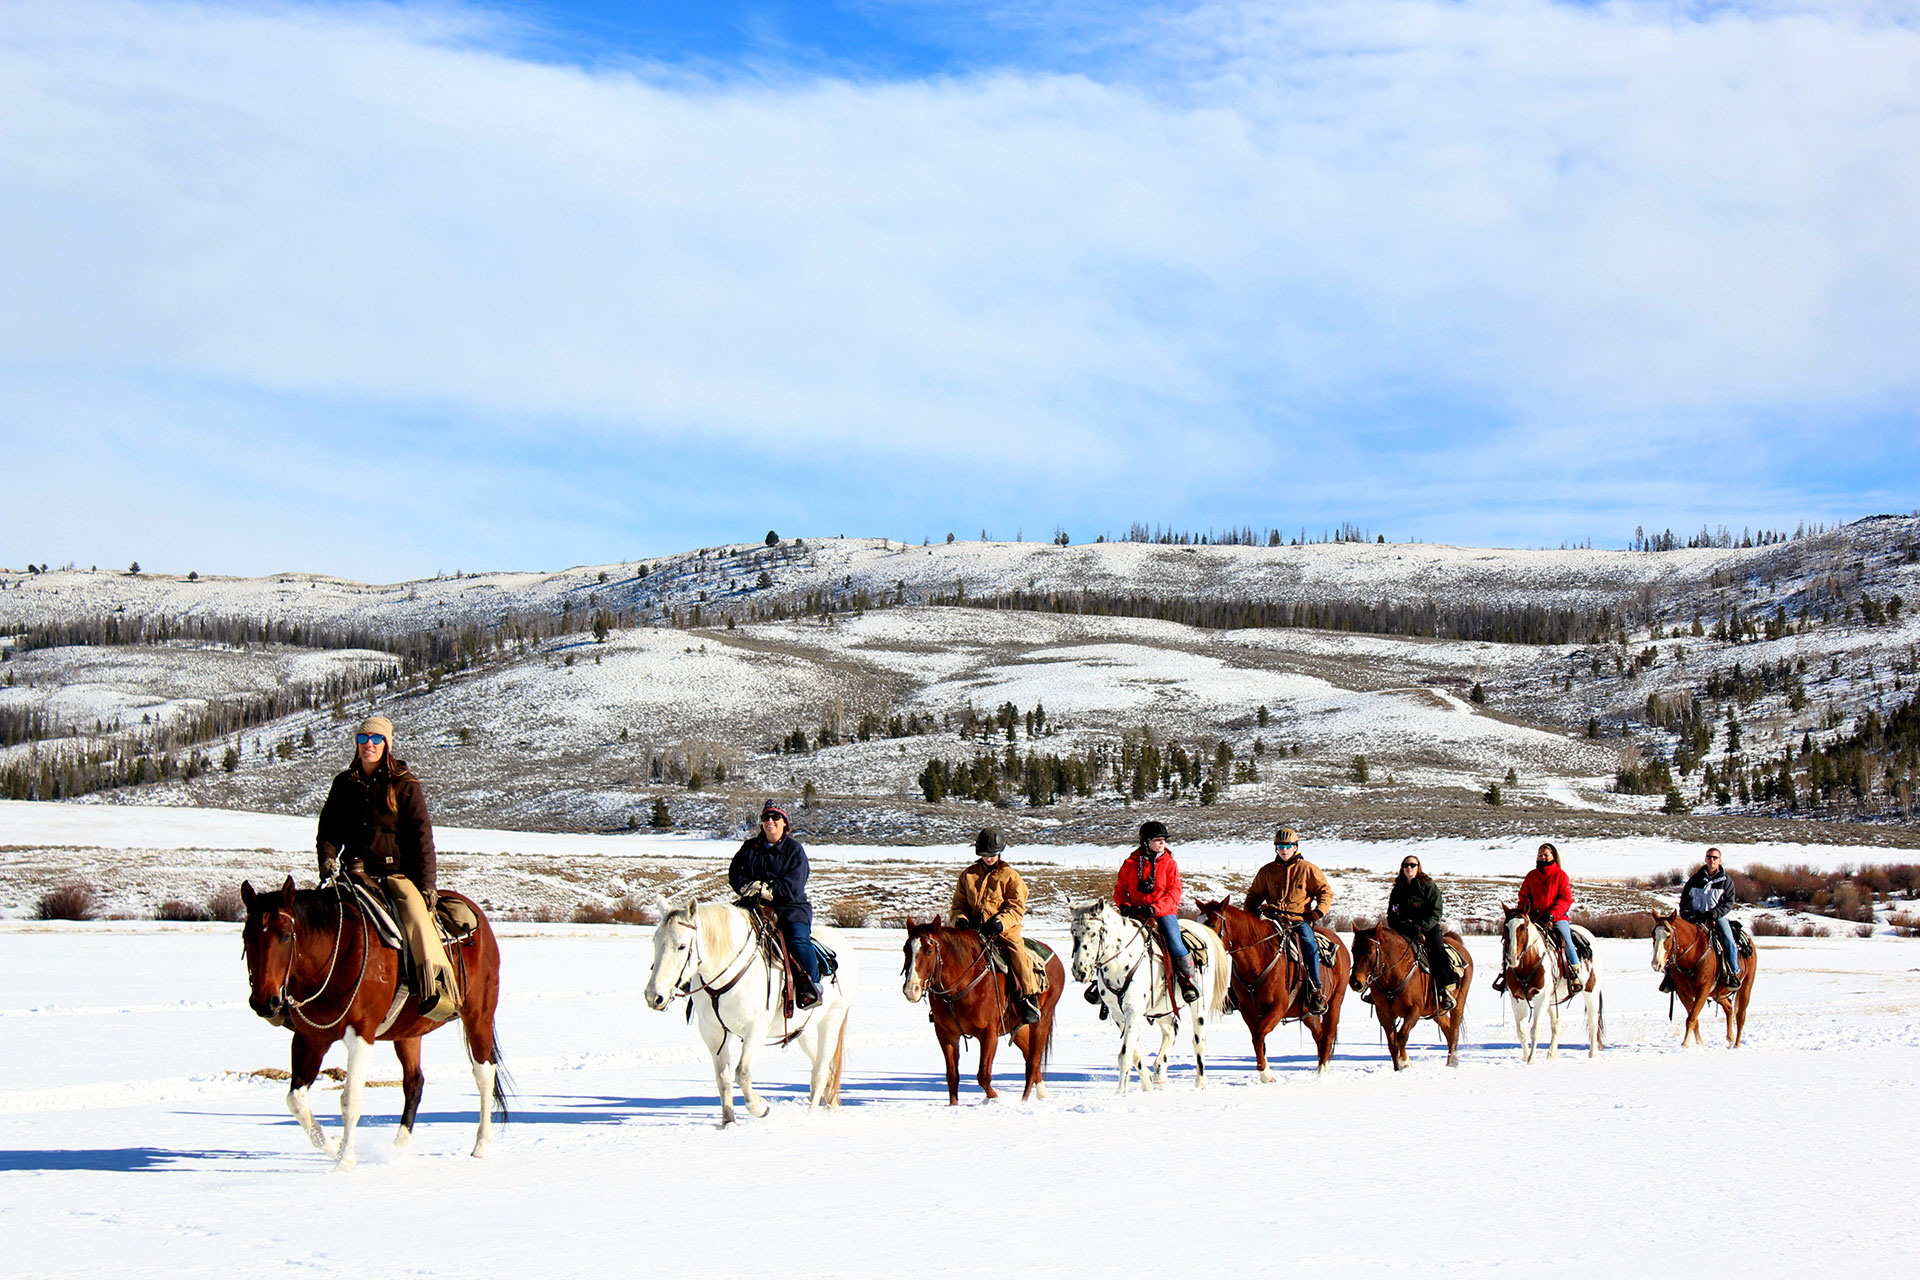 Winter Horseback Riding at C U Lazy Ranch; Courtesy of C U Lazy Ranch